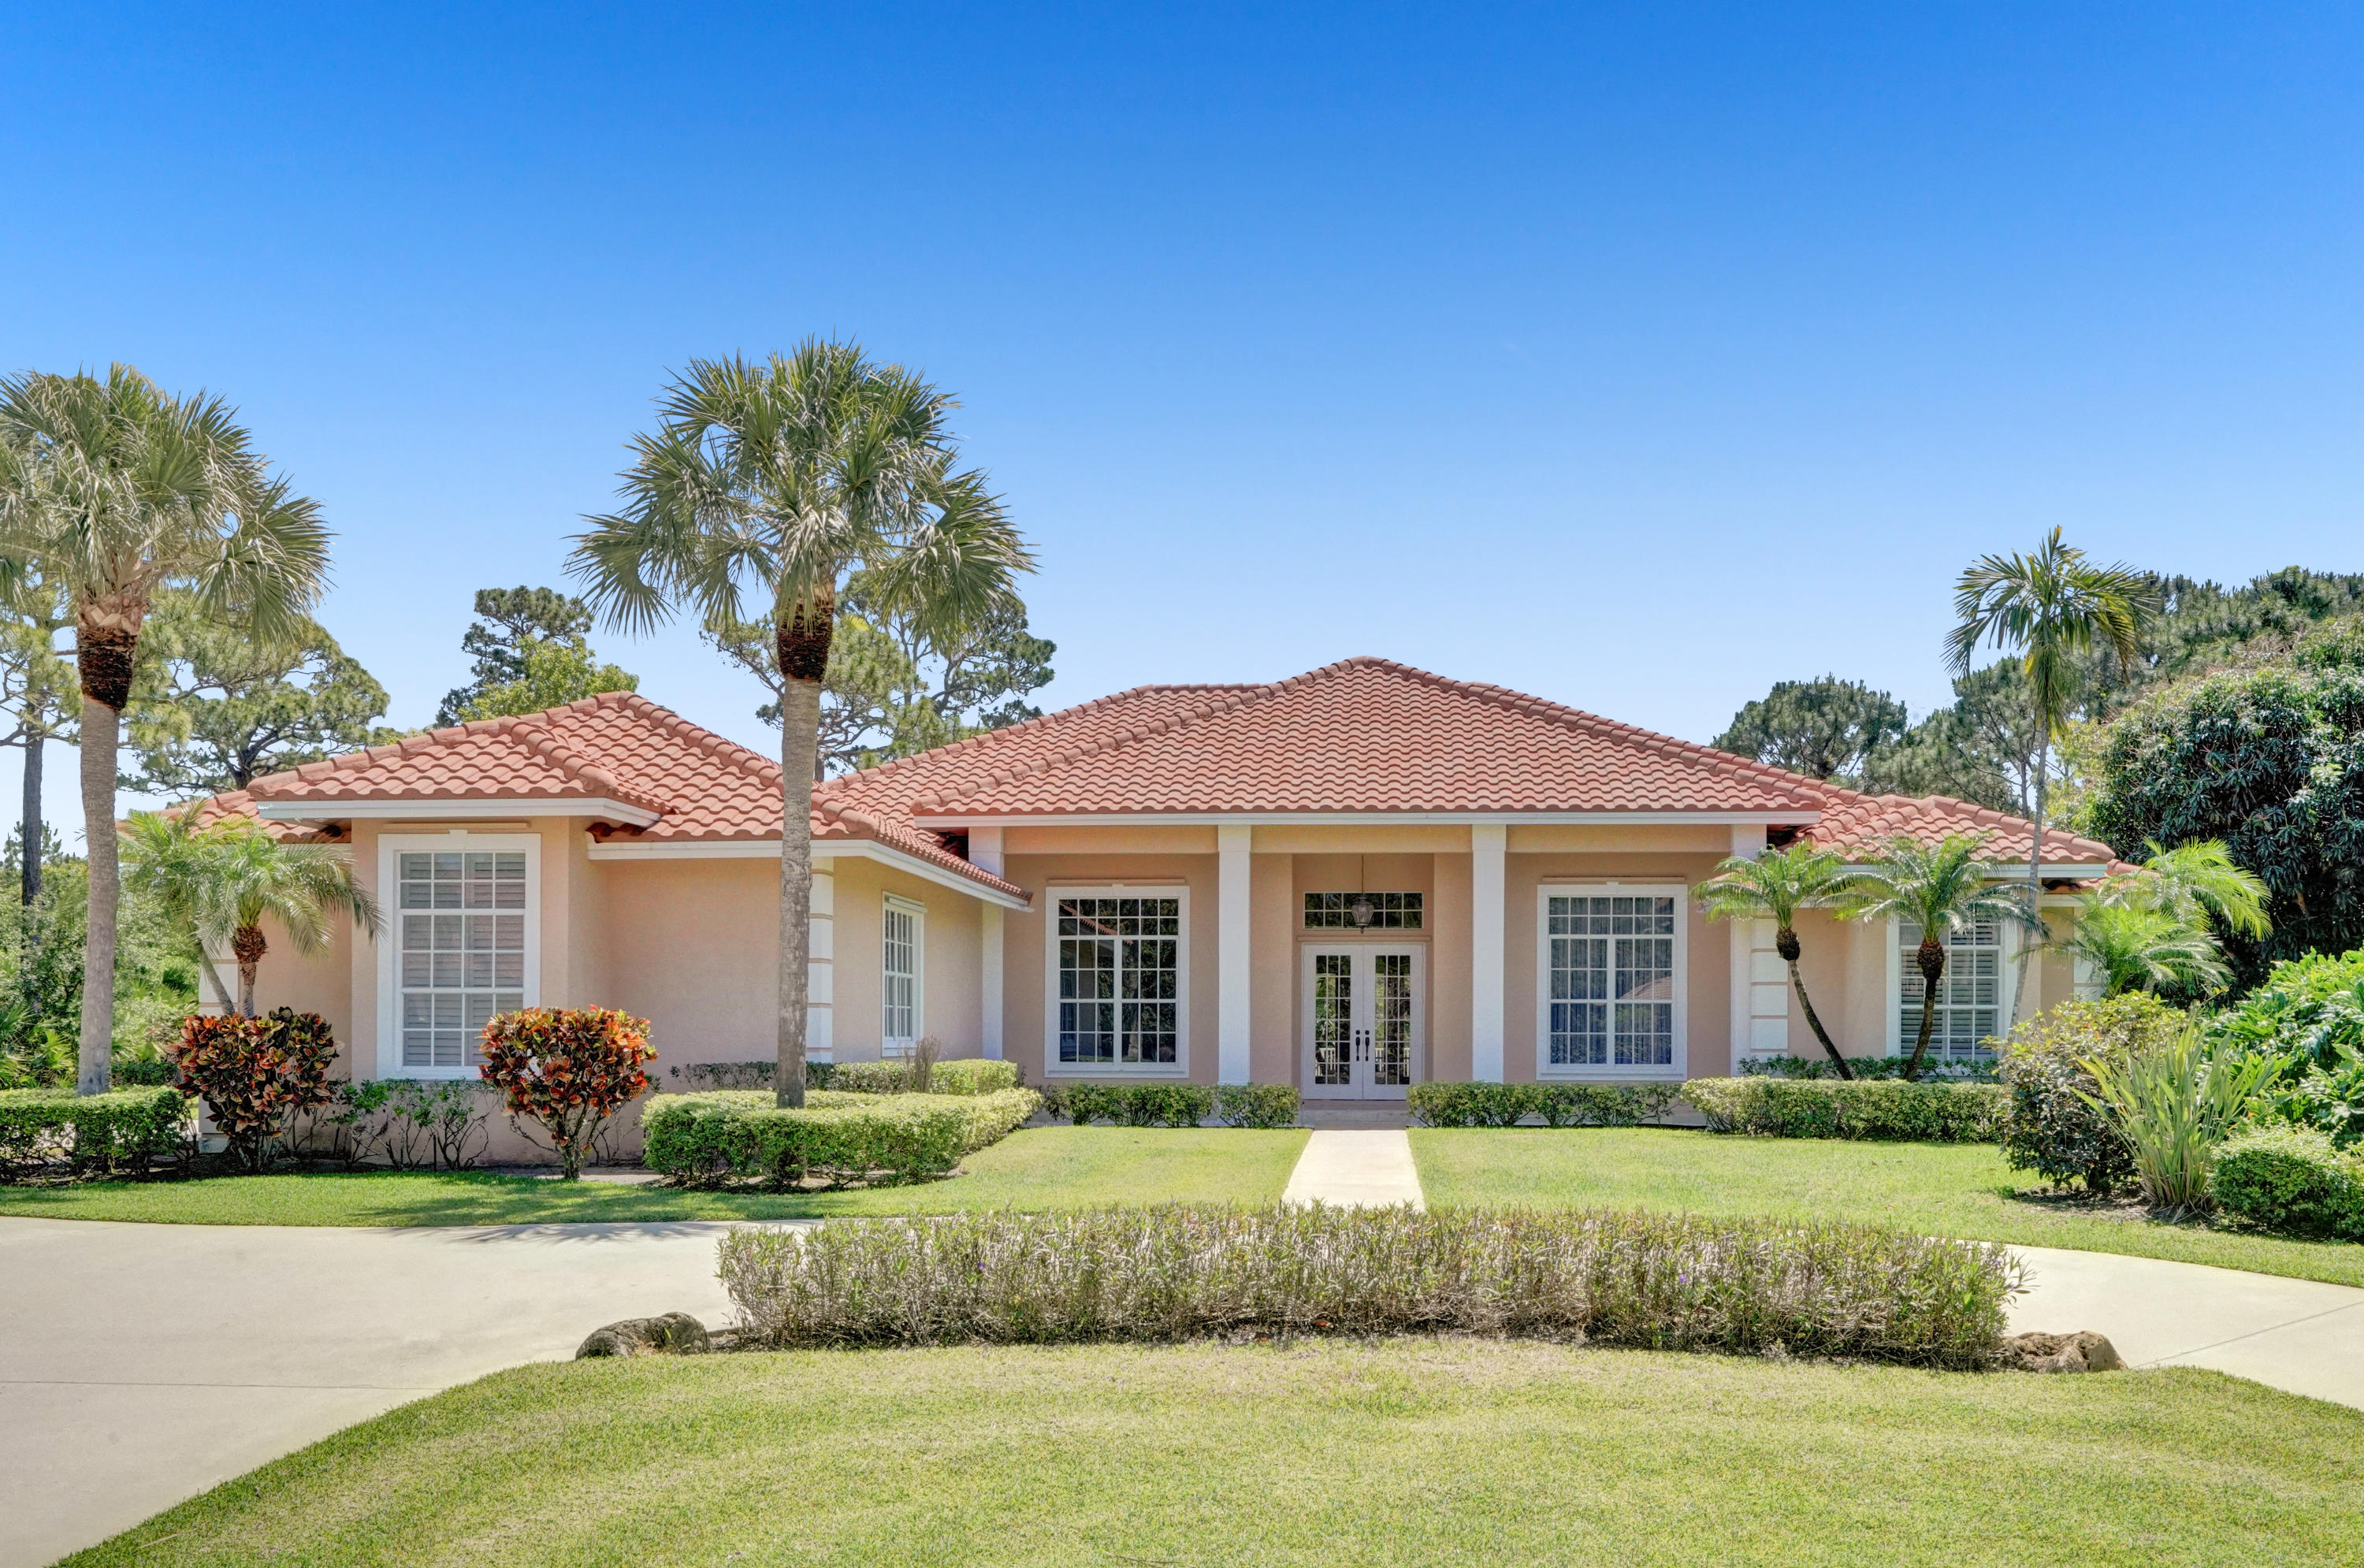 This 4bdr 3ba CBS home is nestled on 1.62 acres in the exclusive, sought after, Gated neighborhood of ISLAND COUNTRY ESTATES.  Your greeted with beautiful barrel-tile roof that was replaced in 2018, landscaping and circular driveway with oversized 2 car garage tucked away on East side.  As you enter, you'll notice the high ceilings, crown molding, and French doors that lead out to the private, Southern exposed pool with deep covered tongue and grove patio.  The kitchen/family room is equipped with S/S appliances 42'' cabinets, granite countertops, built-in shelves and eat-in kitchen/breakfast bar with butt-glass window overlooking the pool and covered area.  Large master suite has plantation shutters, French doors that lead out to the pool area, 2 walk-in closets, double sinks, separate shower, and tub and much more!